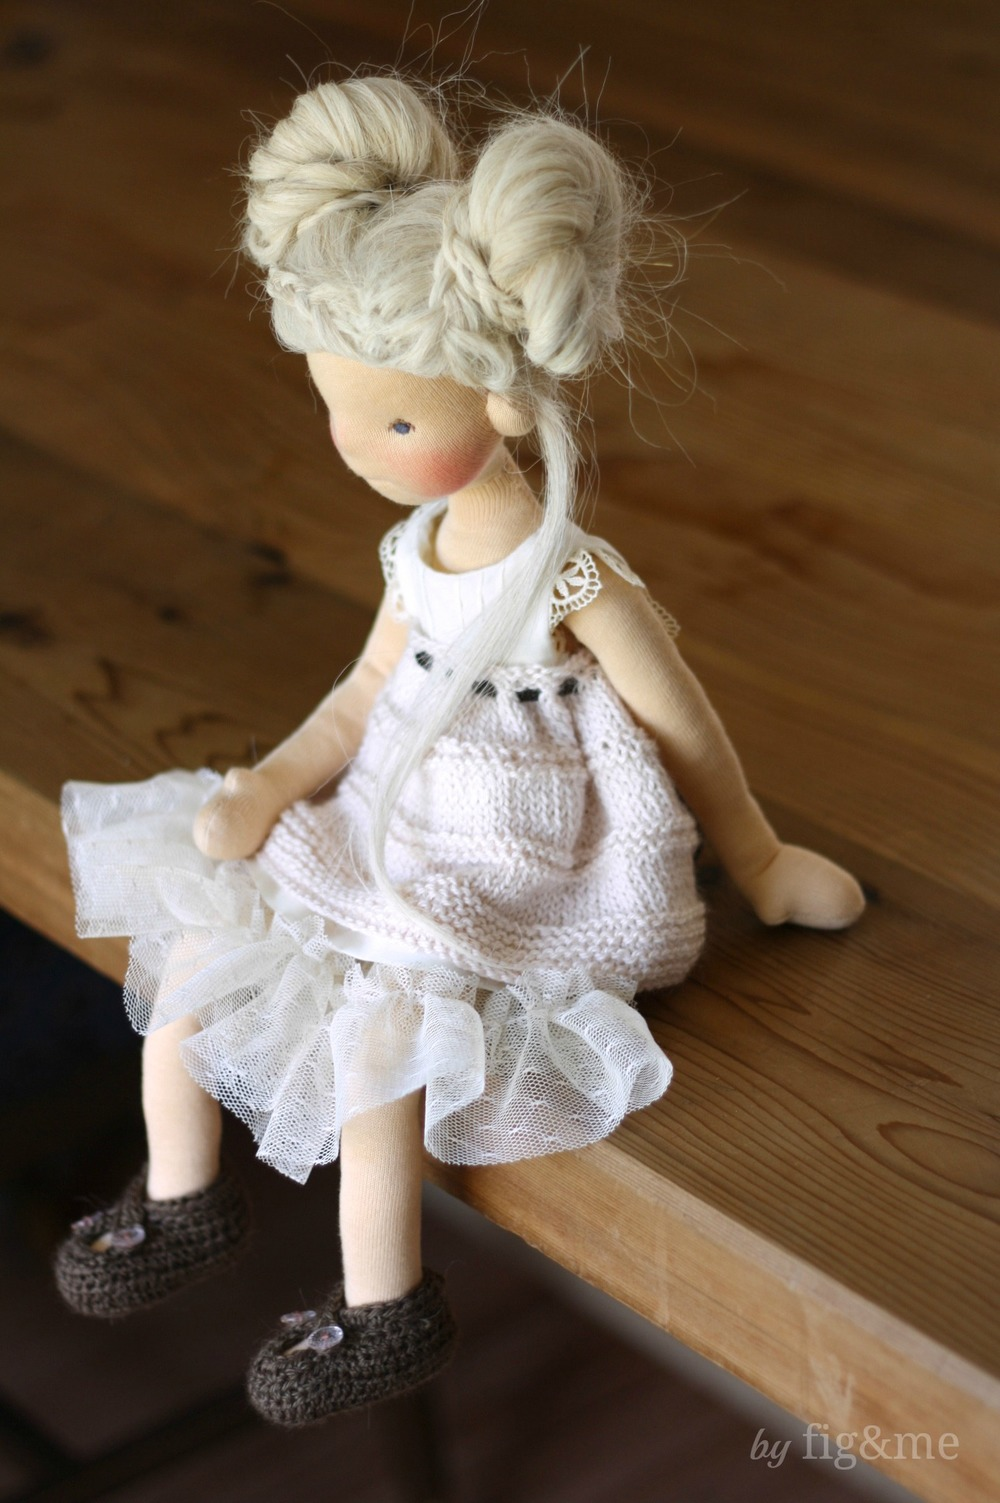 Cygnet is a Mannikin style handmade doll, completely articulated with an inner pose-able core and sculpted in wool, a one of a kind art doll. (via Fig and Me).